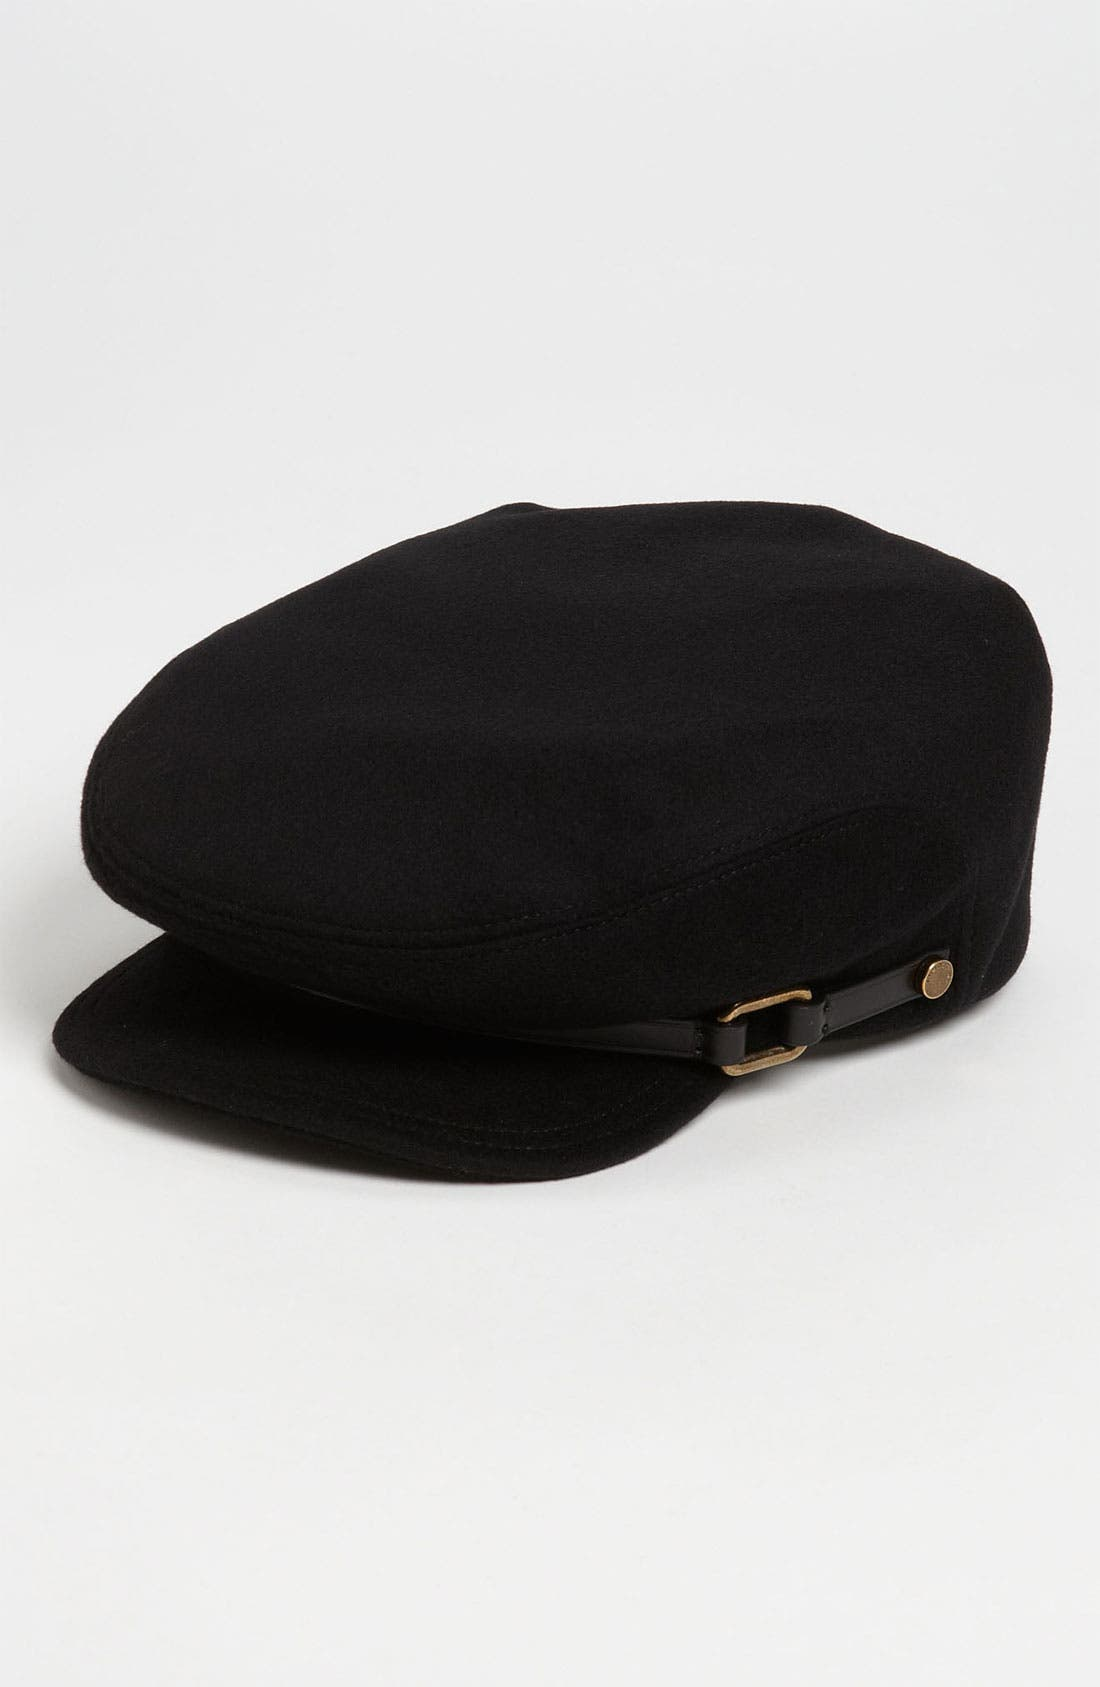 Alternate Image 1 Selected - Burberry London Wool & Cashmere Military Cap